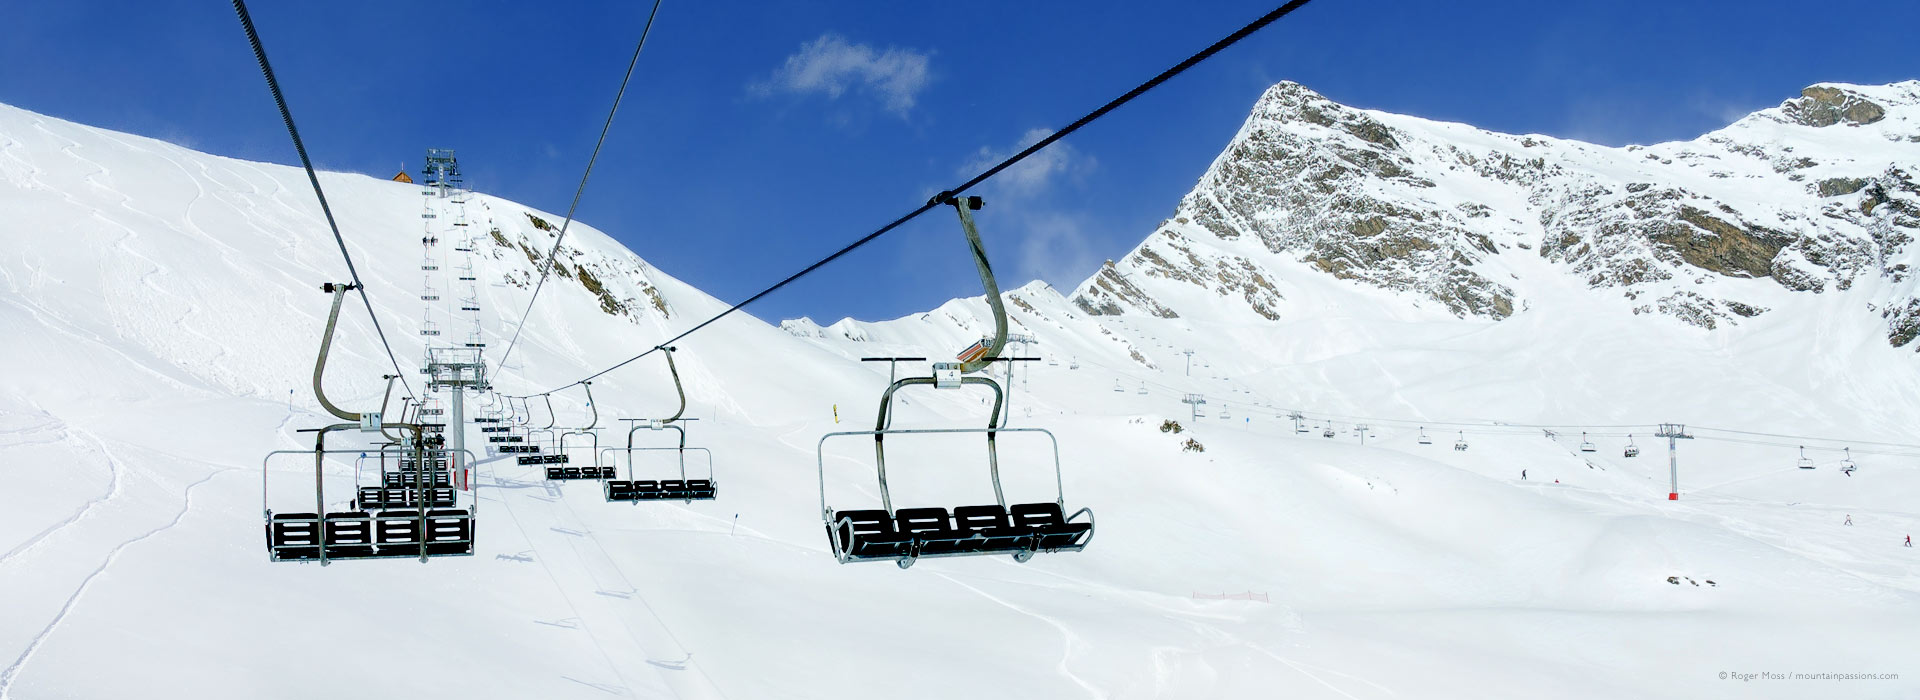 Wide view from chairlift of mountains above Cauterets ski resort.